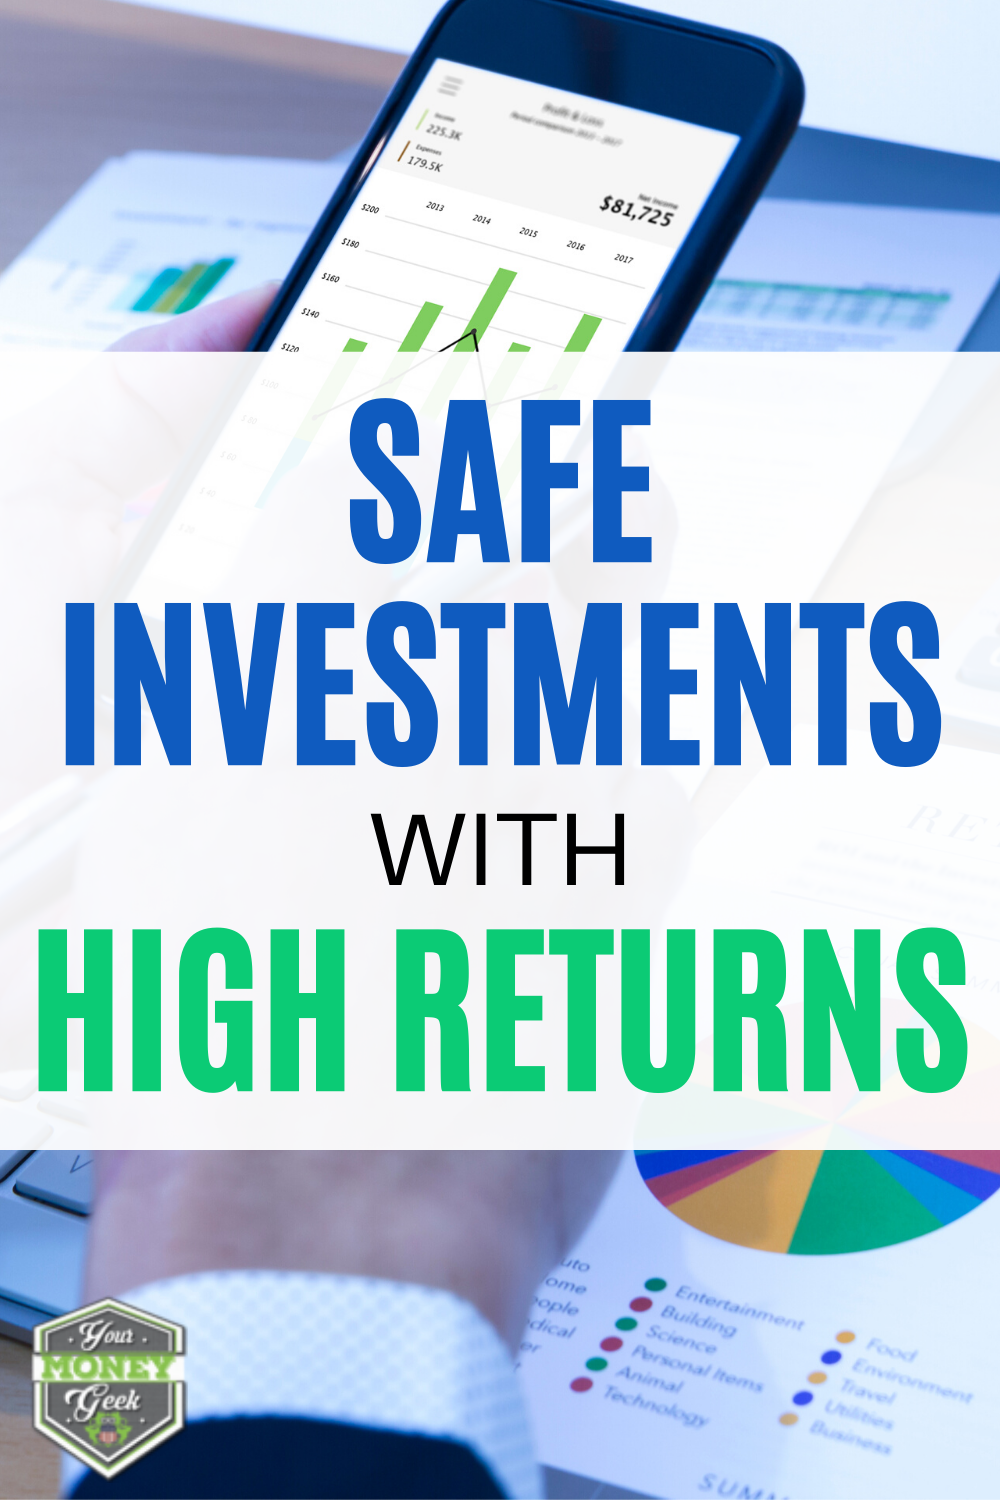 Rikedom investments with high returns bruce roberson sun capital investment